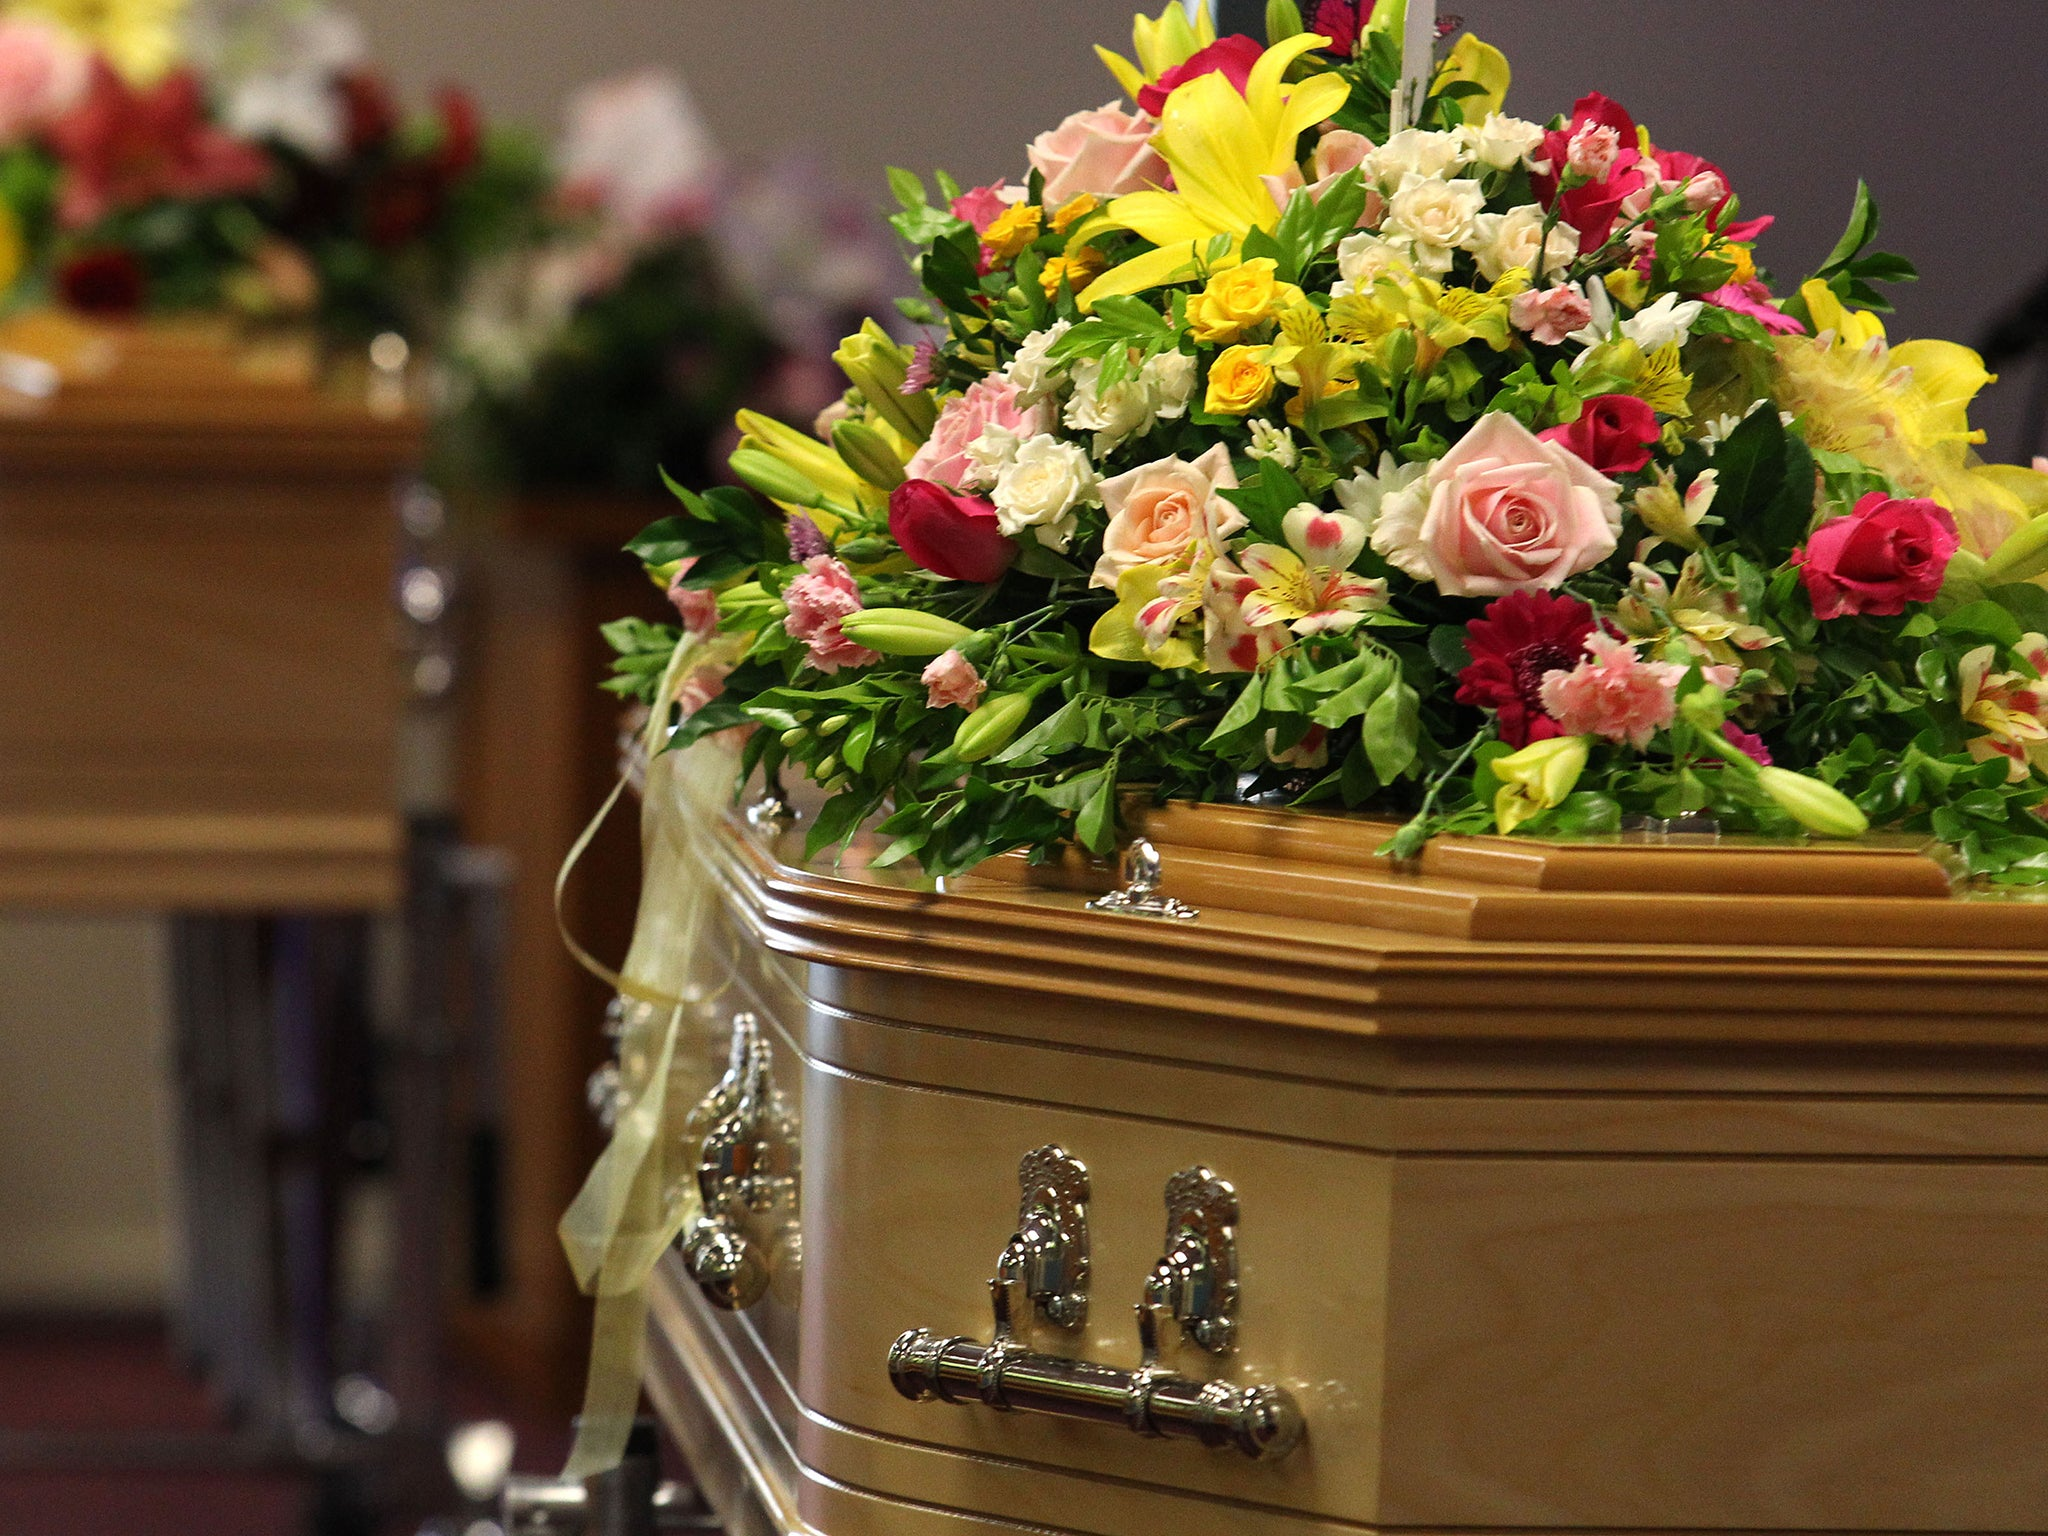 Two women arrested for brawling in front of relatives casket at two women arrested for brawling in front of relatives casket at funeral home the independent izmirmasajfo